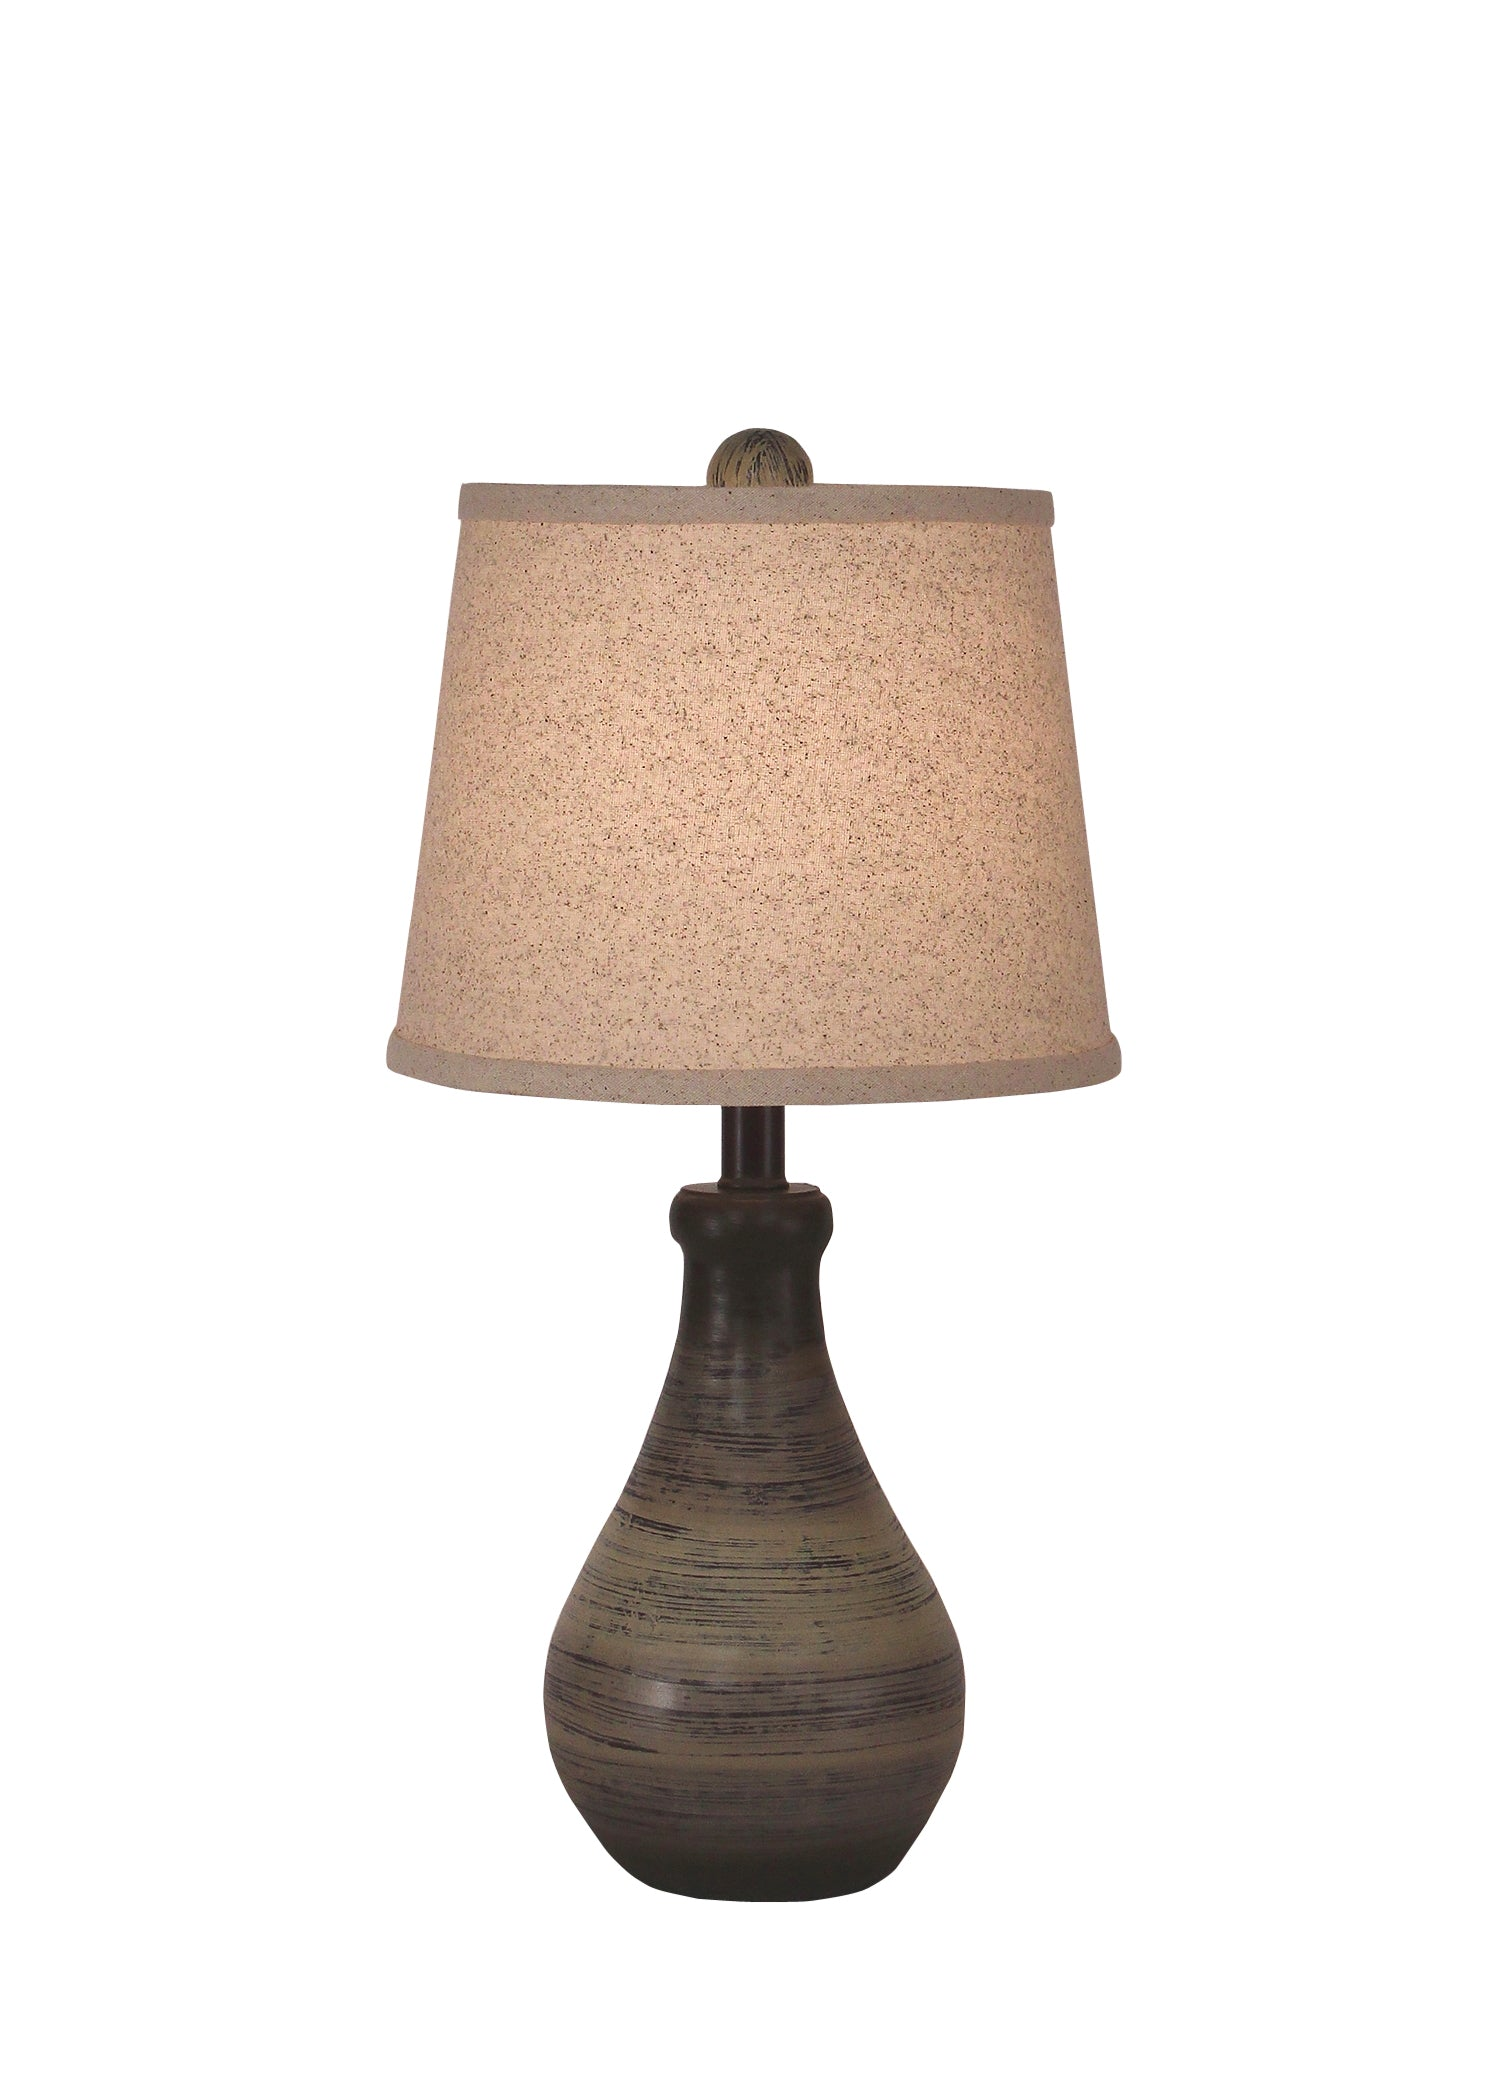 Earthstone Small Eggplant Clay Table Lamp - Coast Lamp Shop